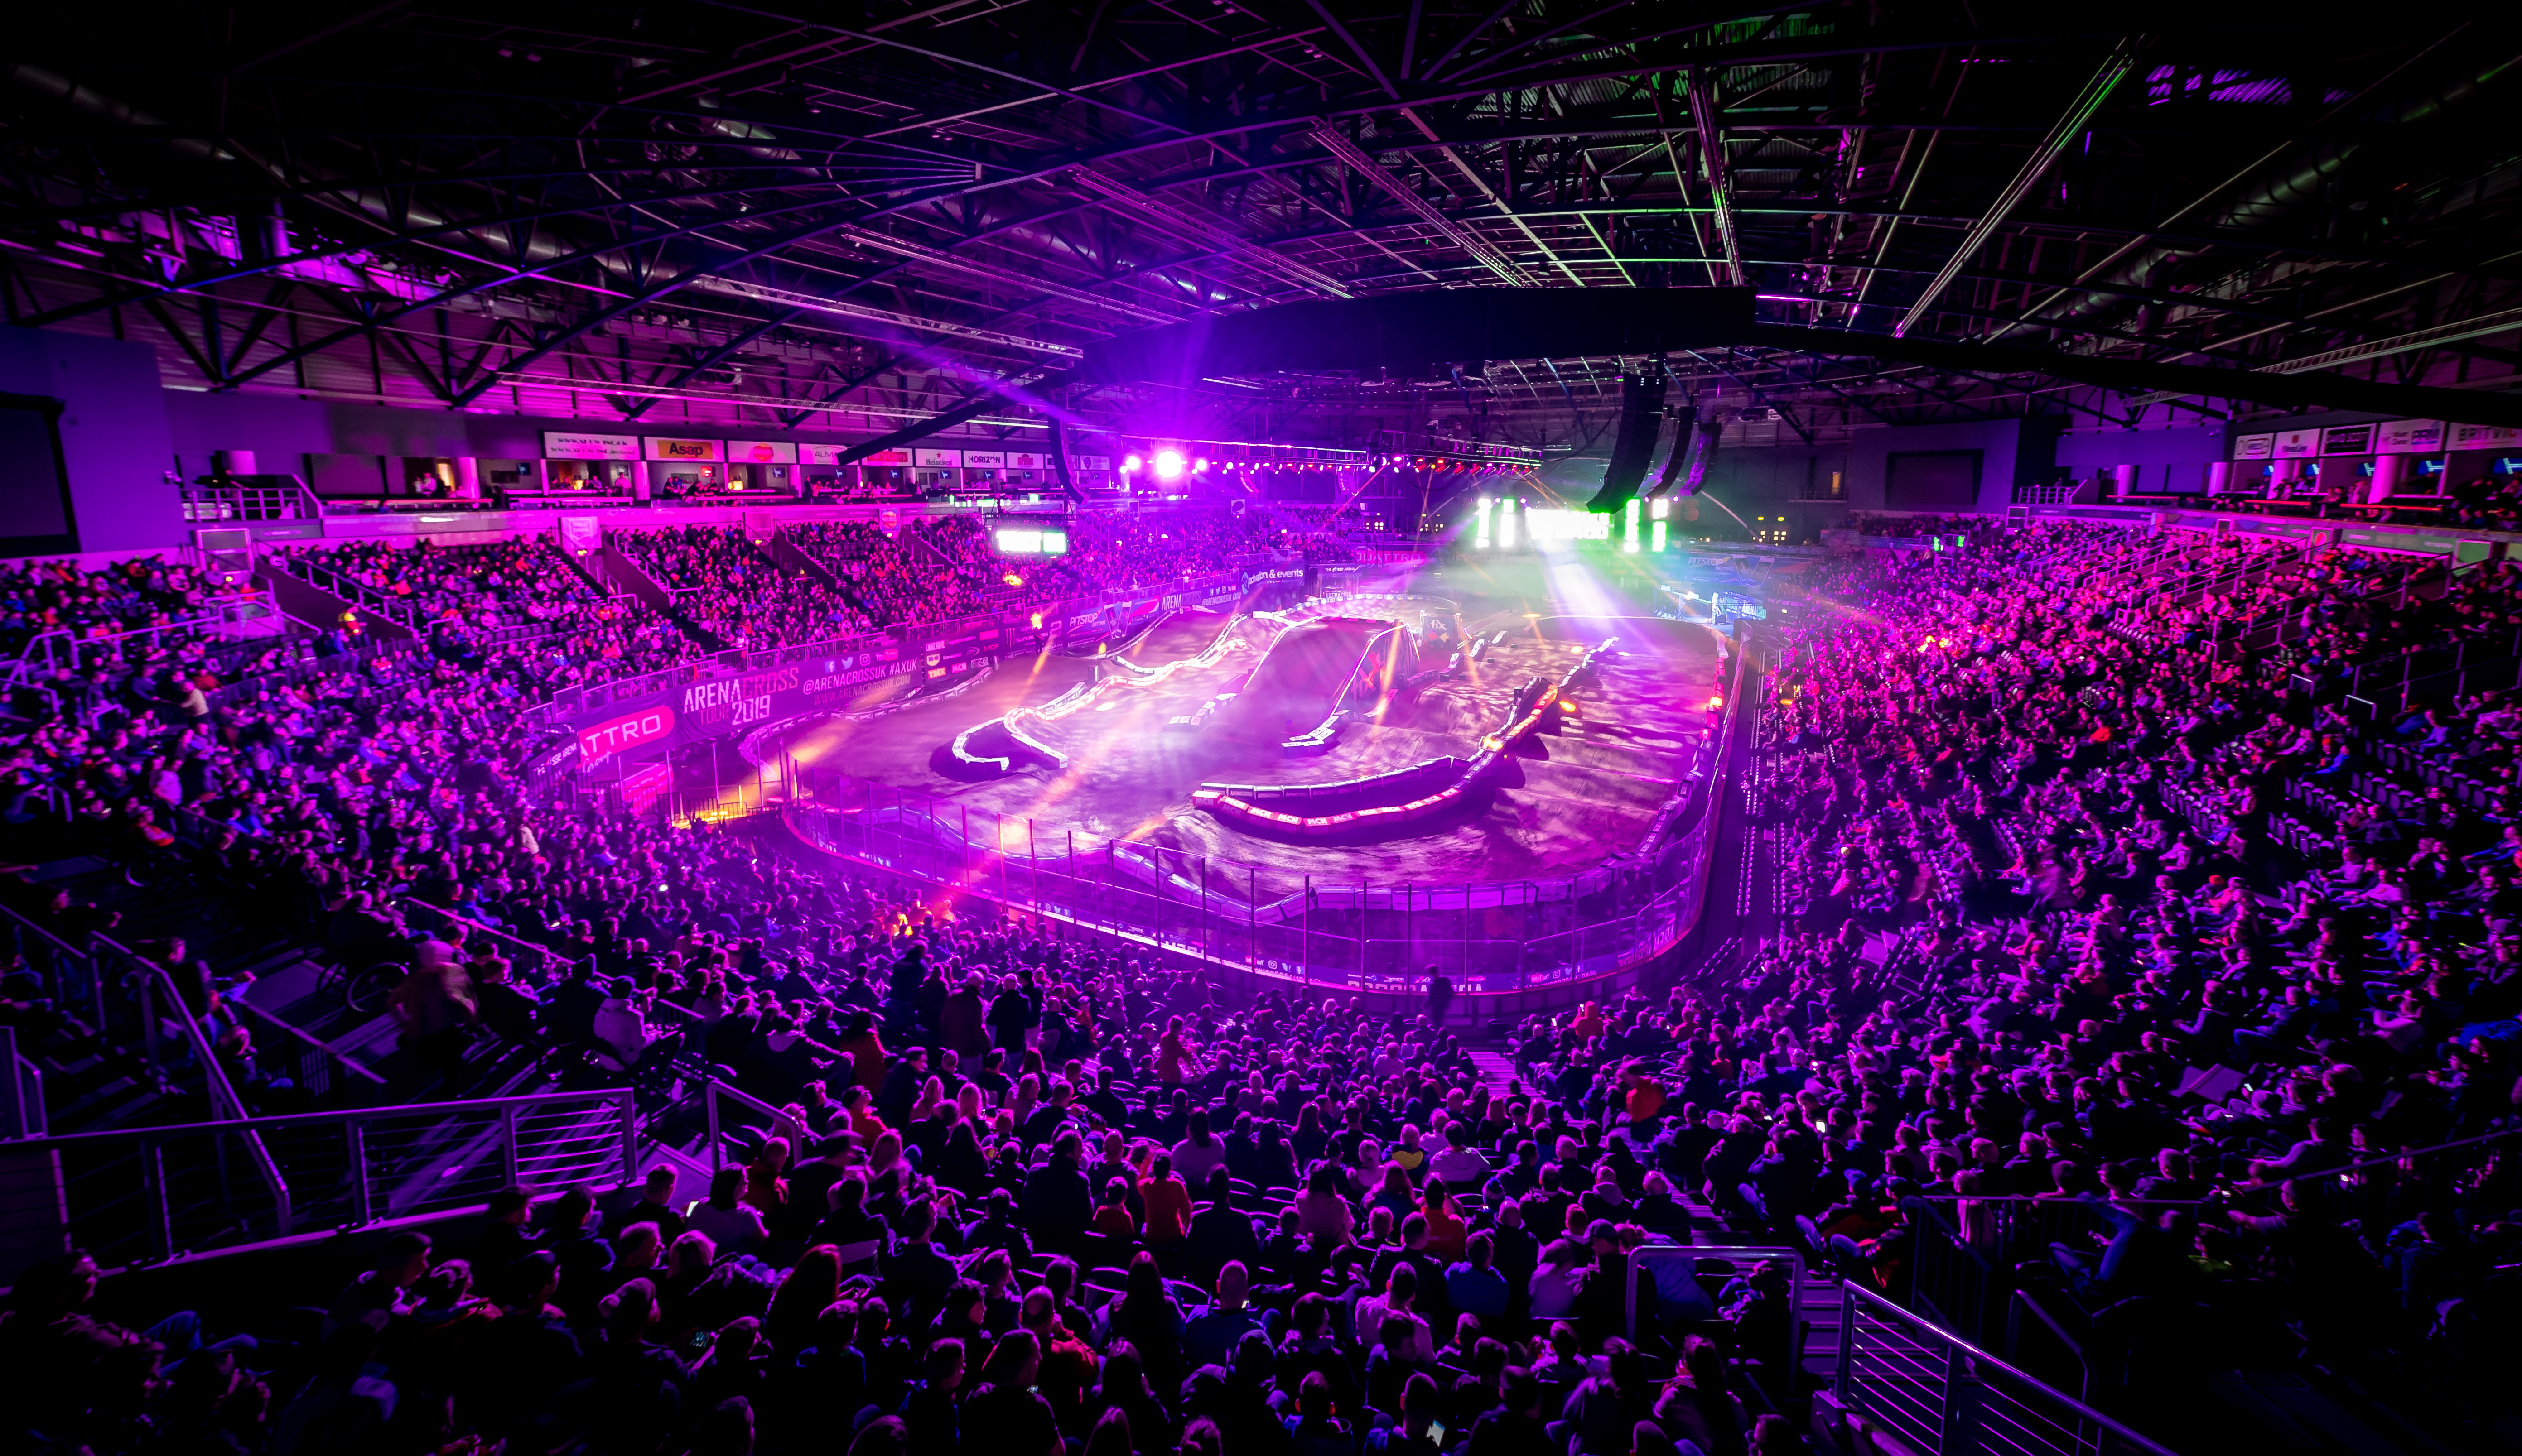 BELFAST ARENACROSS ROUND ONE SELL OUT